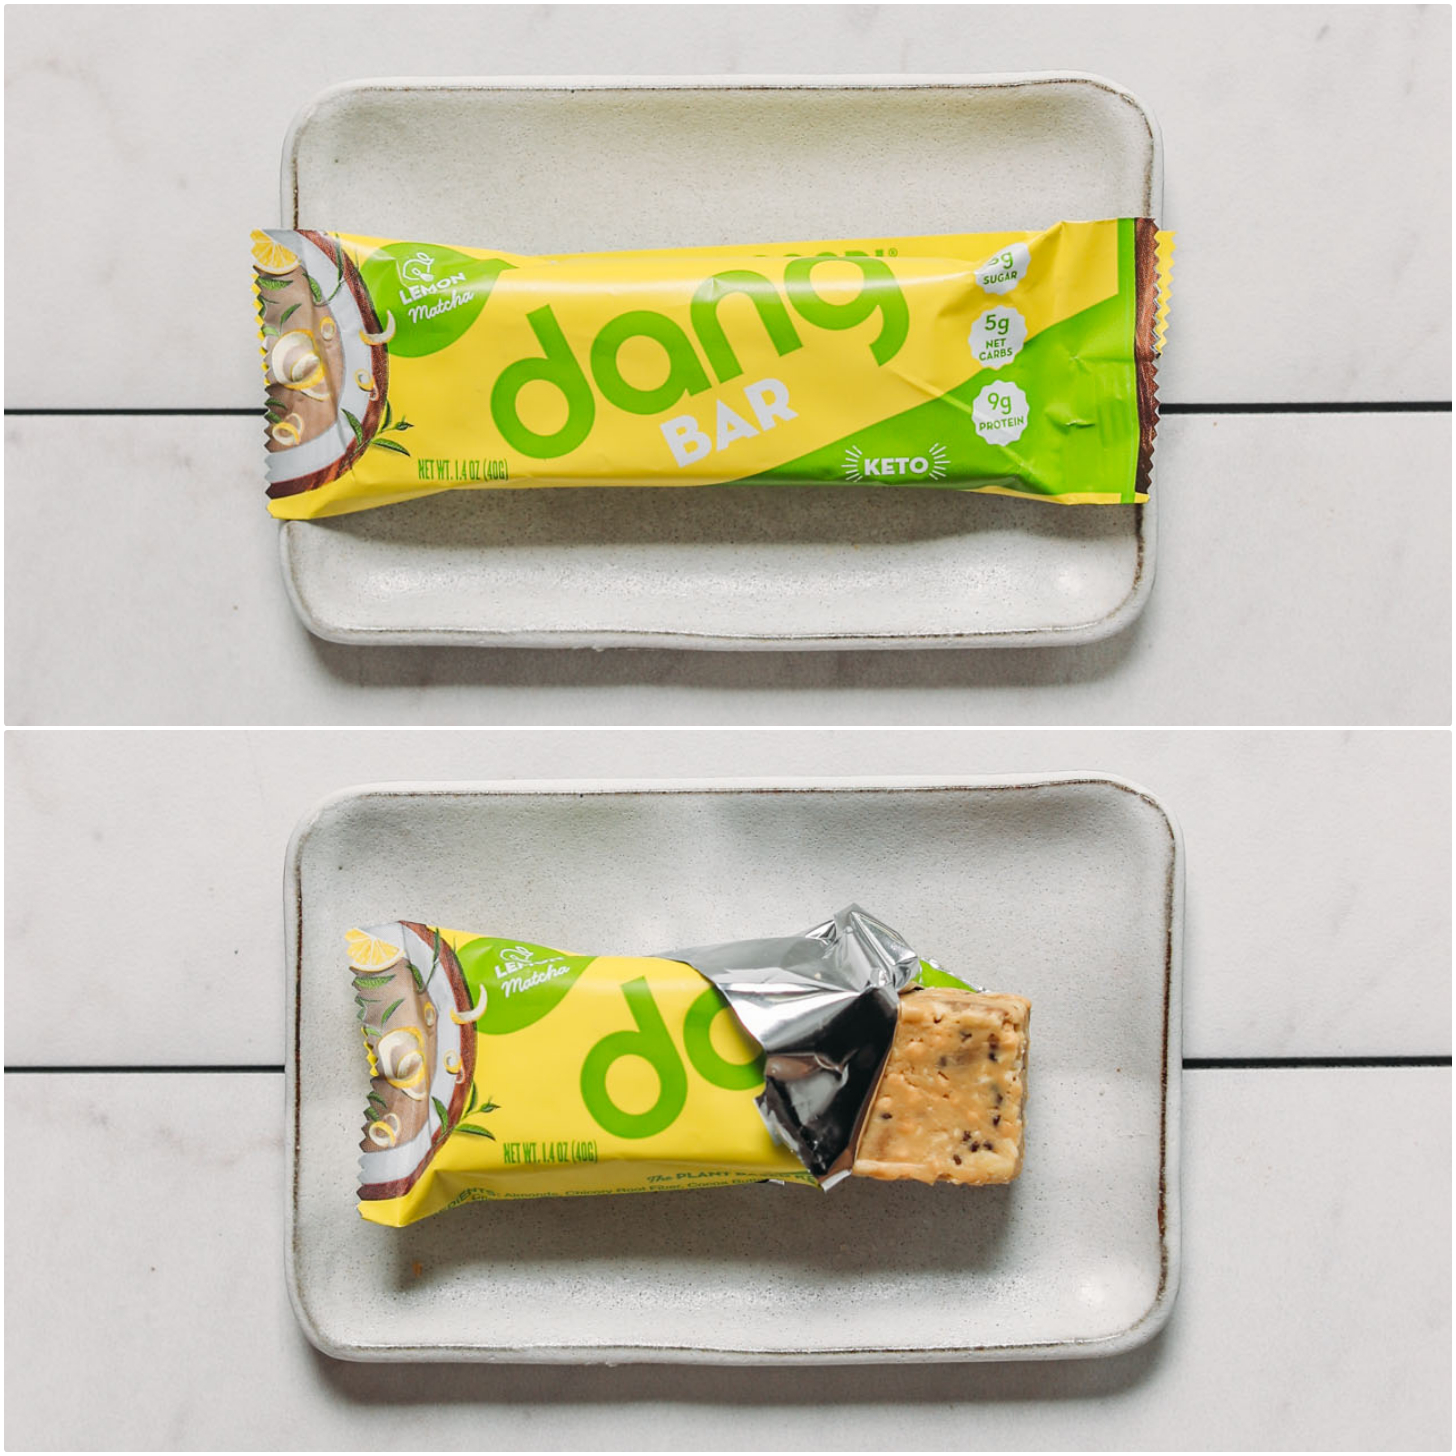 Closed and opened Dang Lemon Matcha protein bar for our unbiased plant-based protein bar review